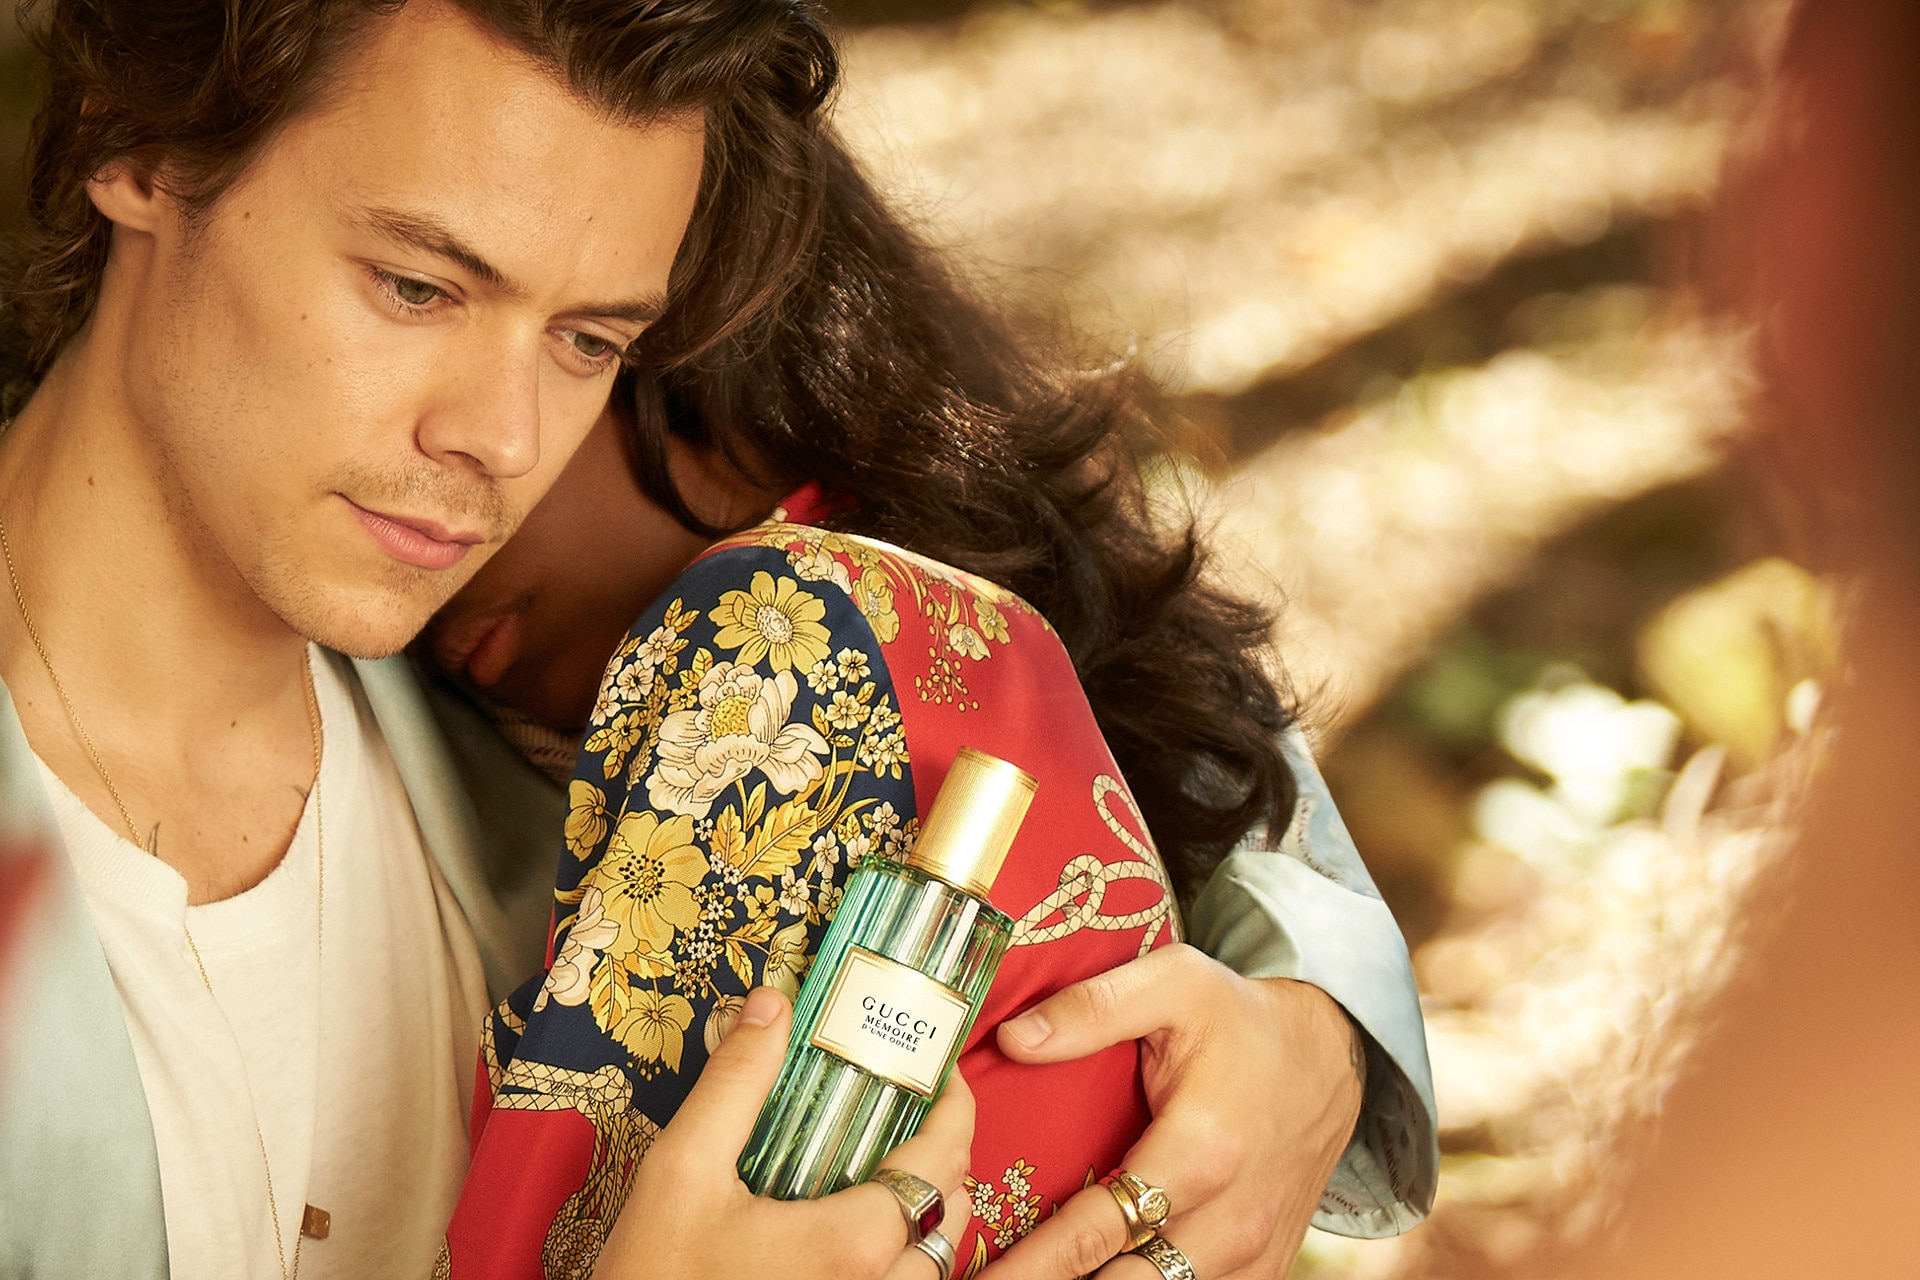 Gucci launches its first universal fragrance with the help of Harry Styles